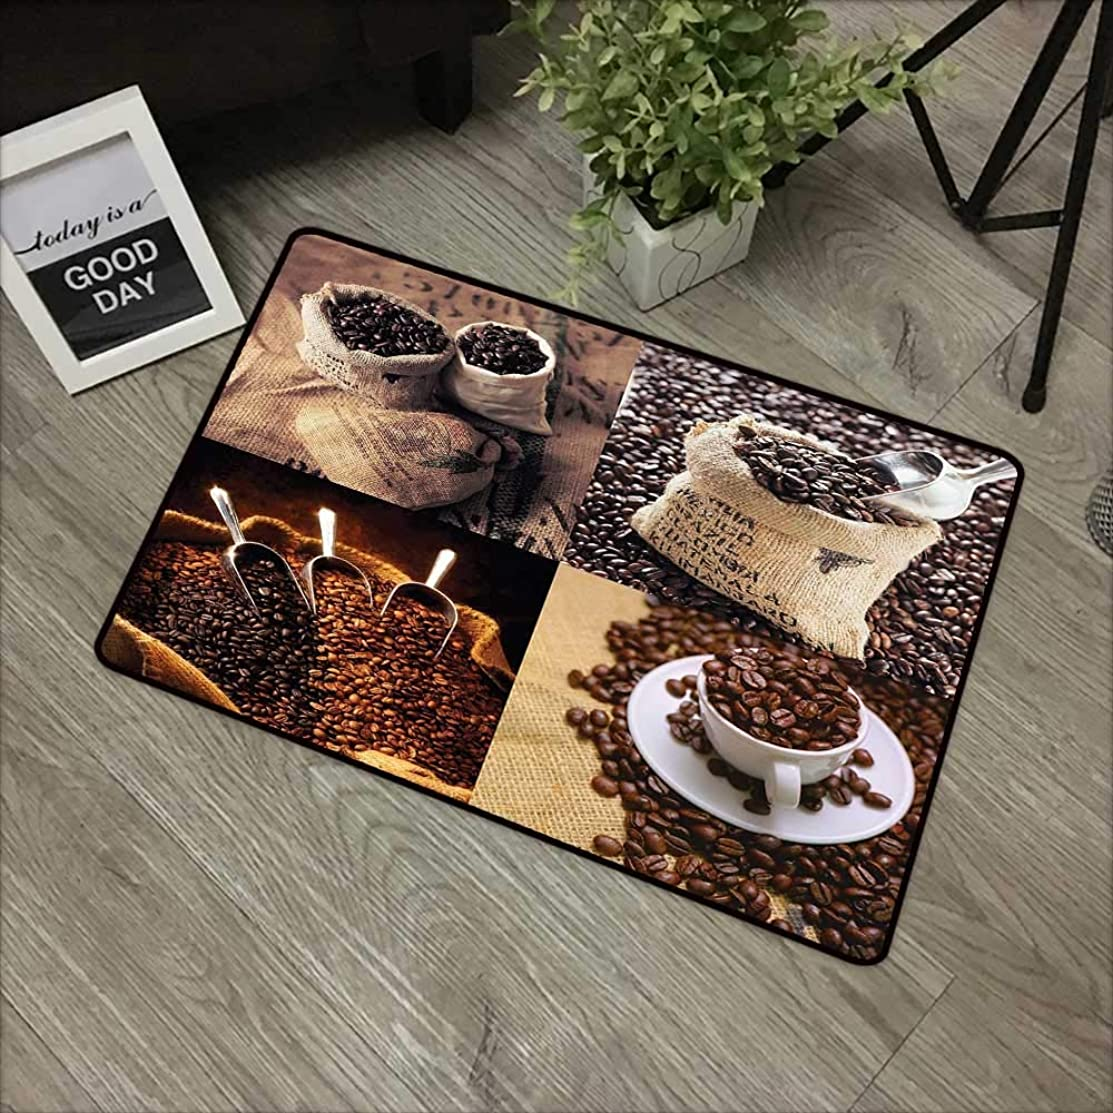 Bathroom Door mat W31 x L47 INCH Coffee,Rustic Collage of Images Showing Different Kinds of Roasted Grains,Brown Dark and Sand Brown Easy to Clean, no Deformation, no Fading Non-Slip Door Mat Carpet